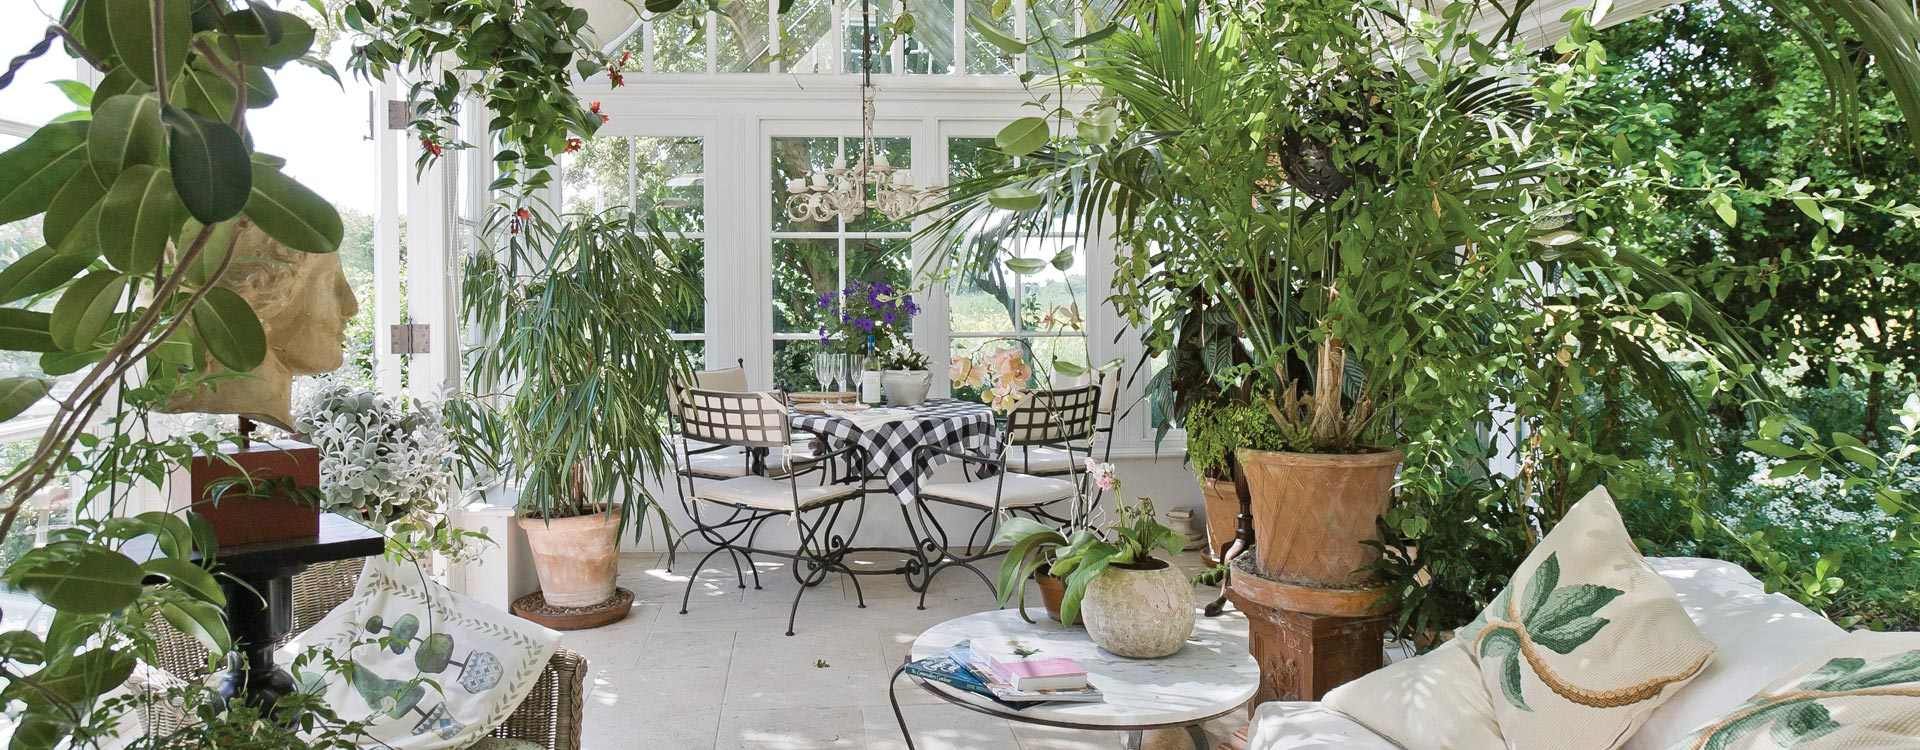 Conservatory built perfectly for plants